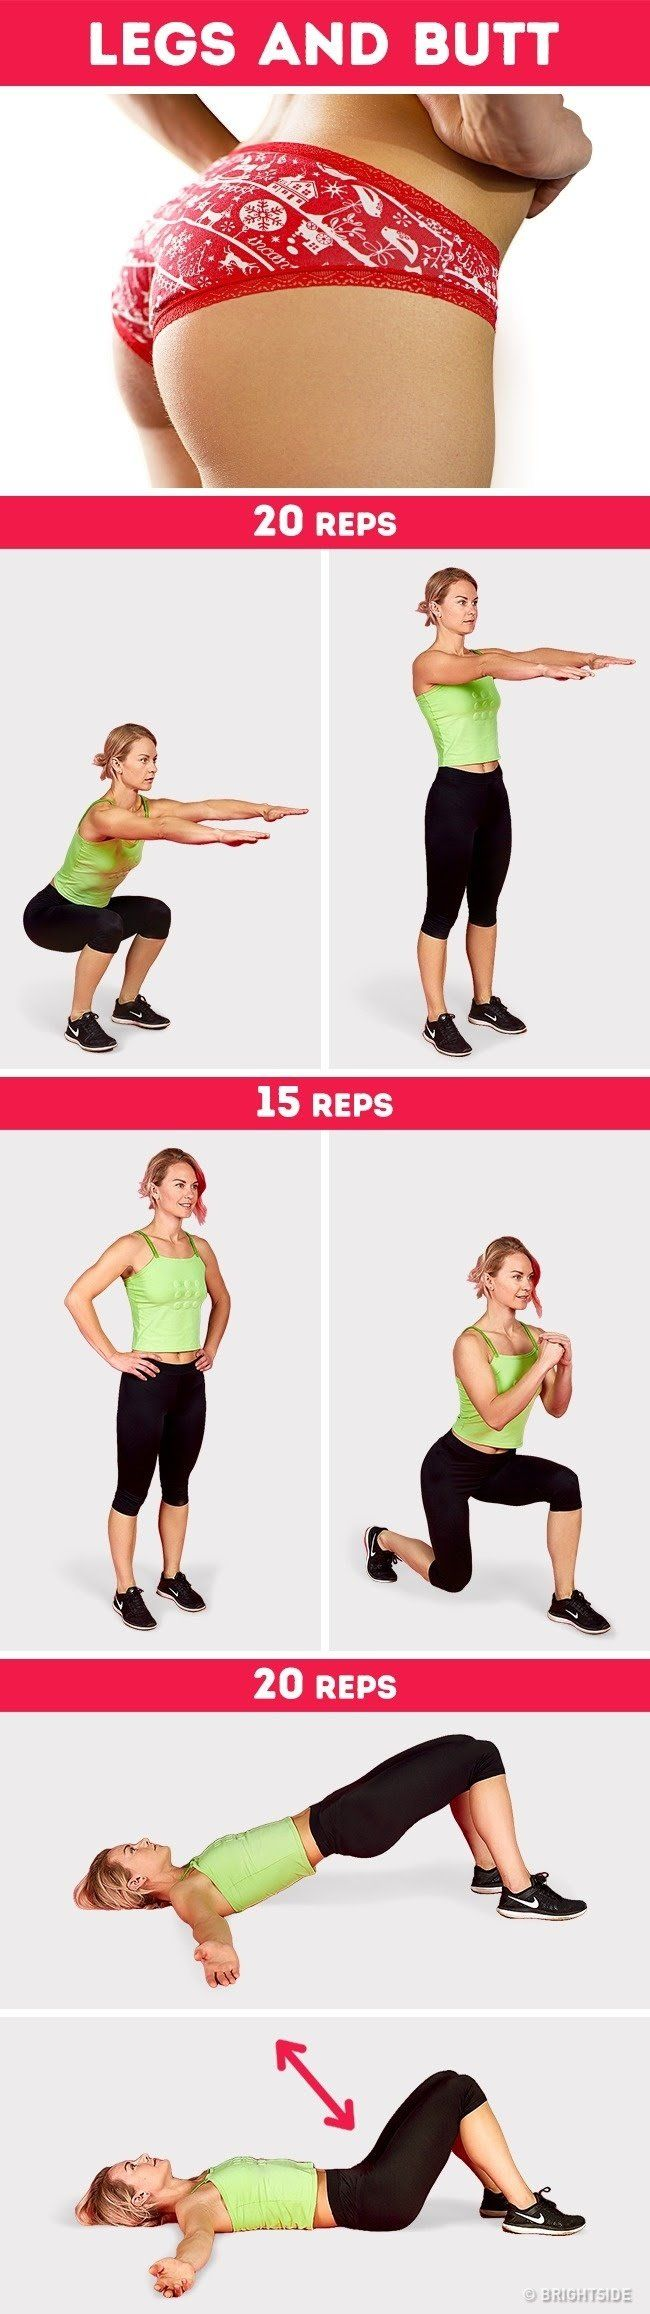 Are you ready for this workout?